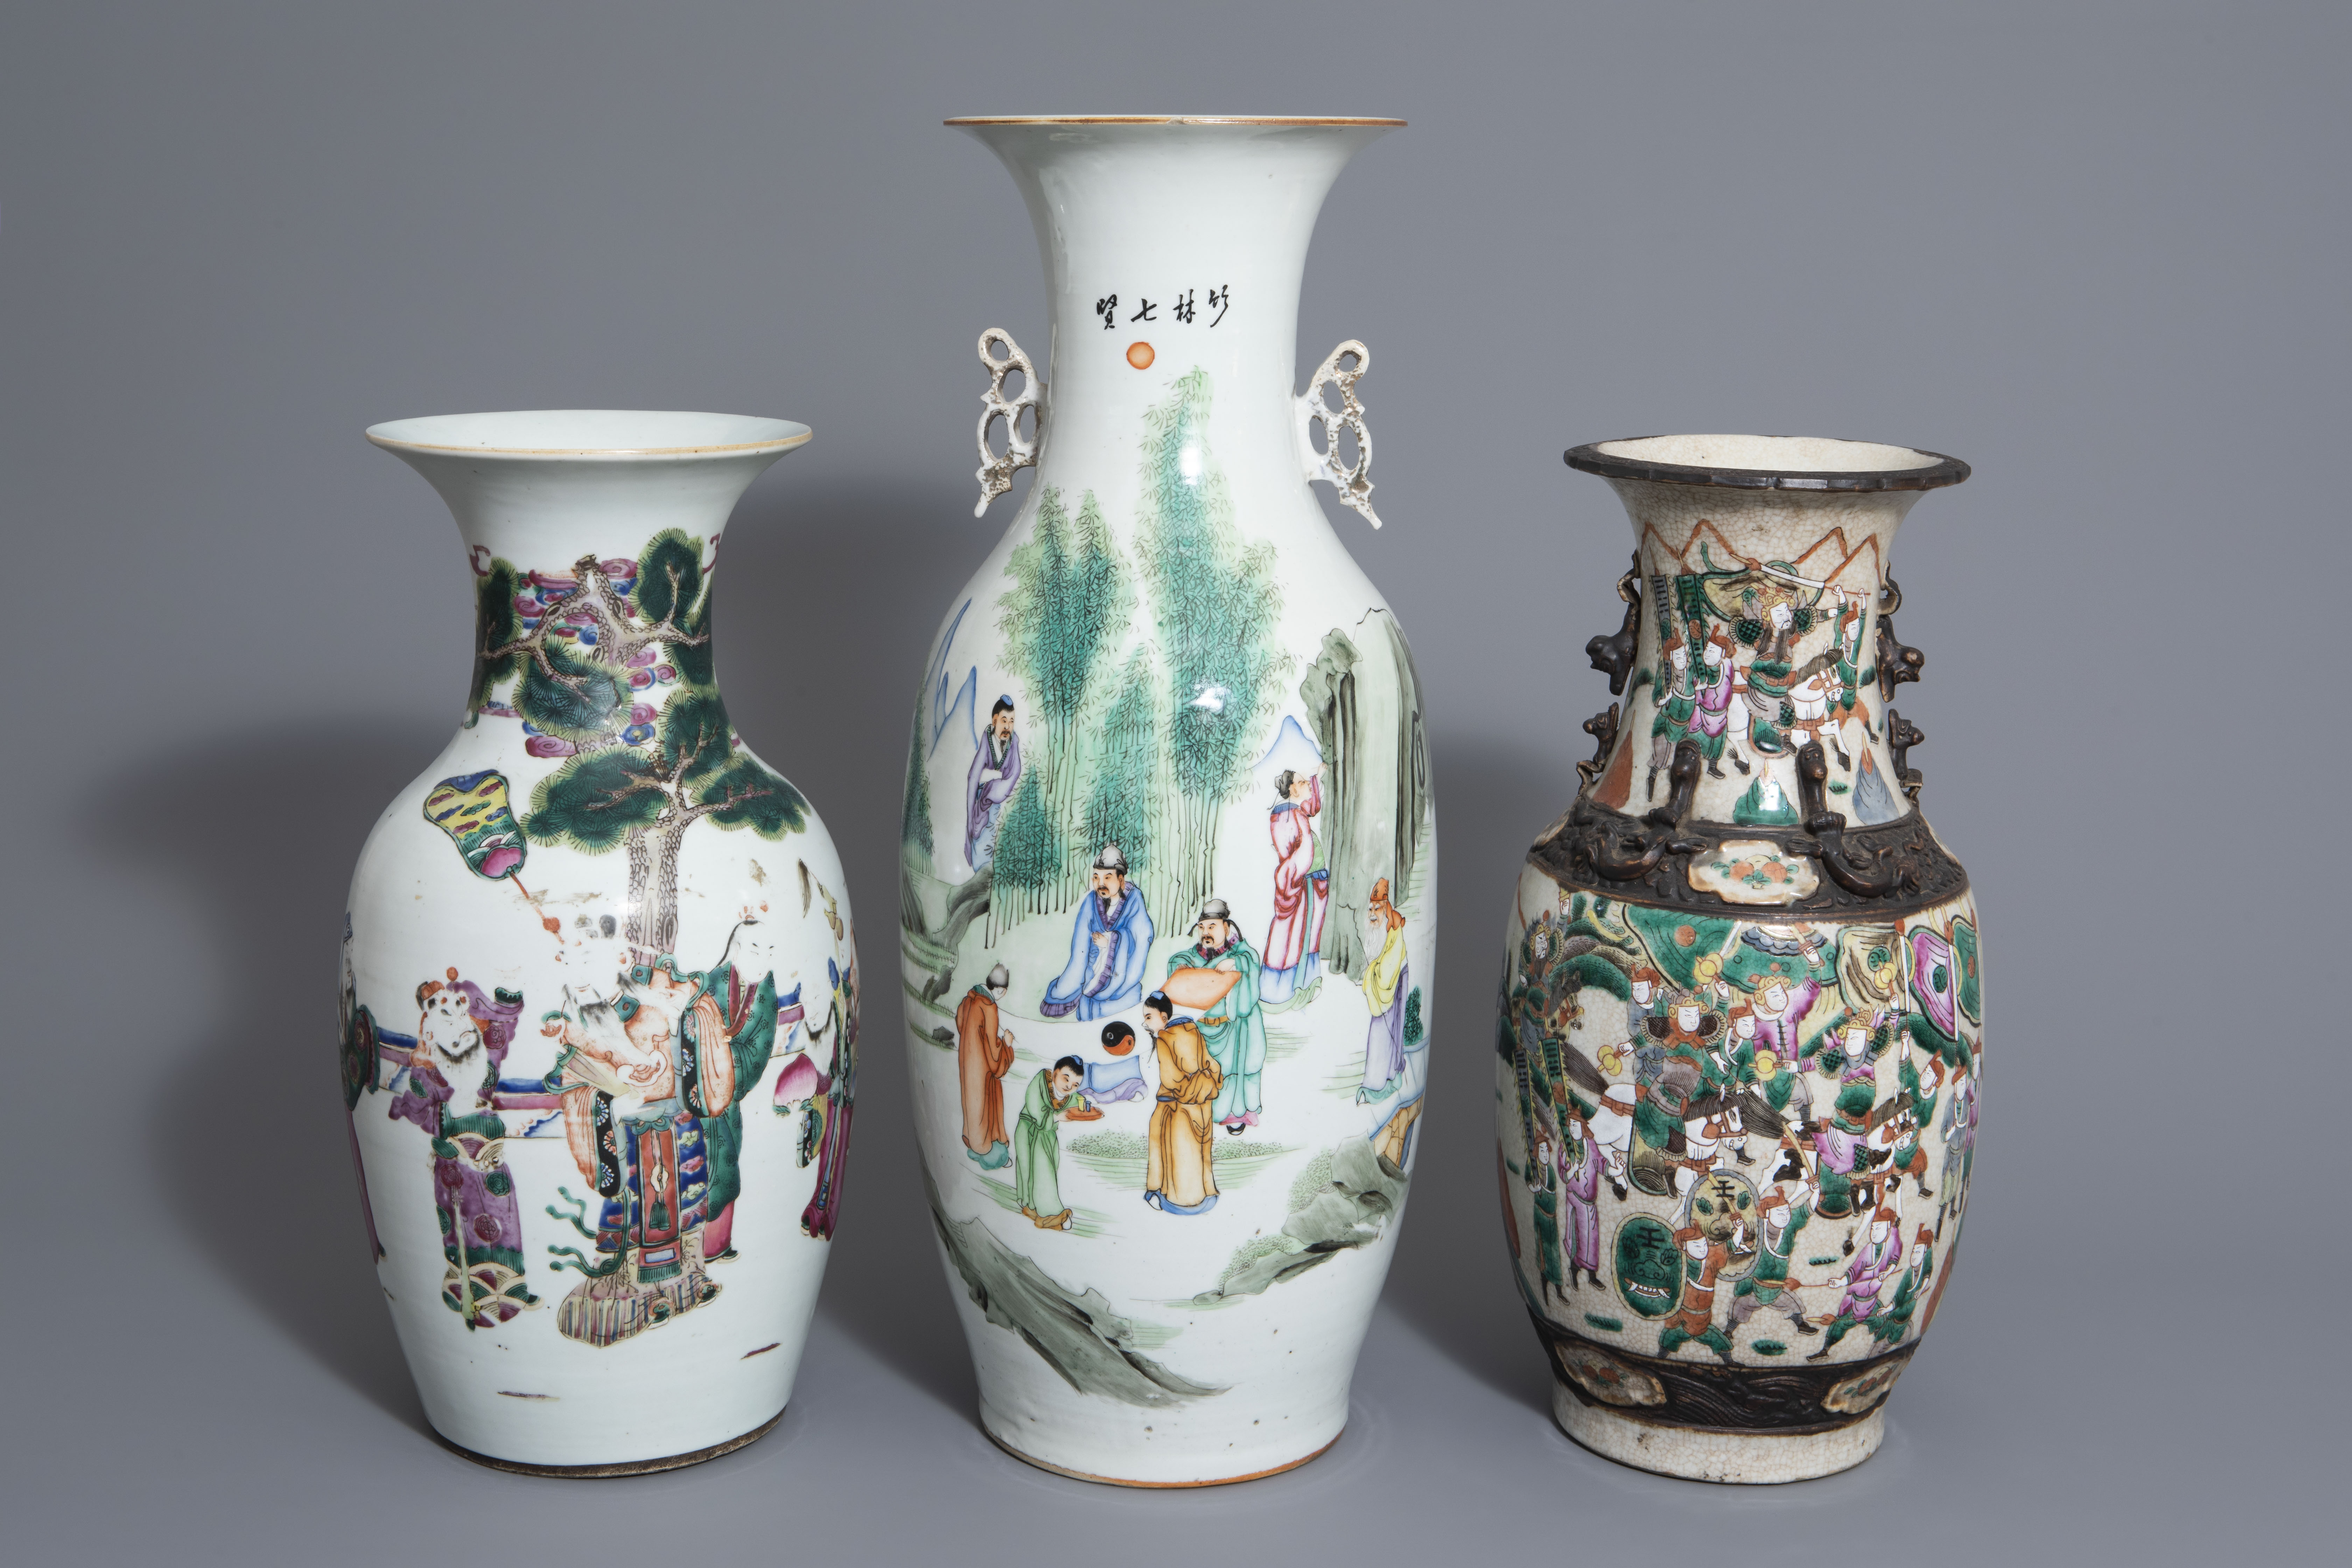 Three Chinese famille rose and Nanking crackle glazed vases, 19th C.